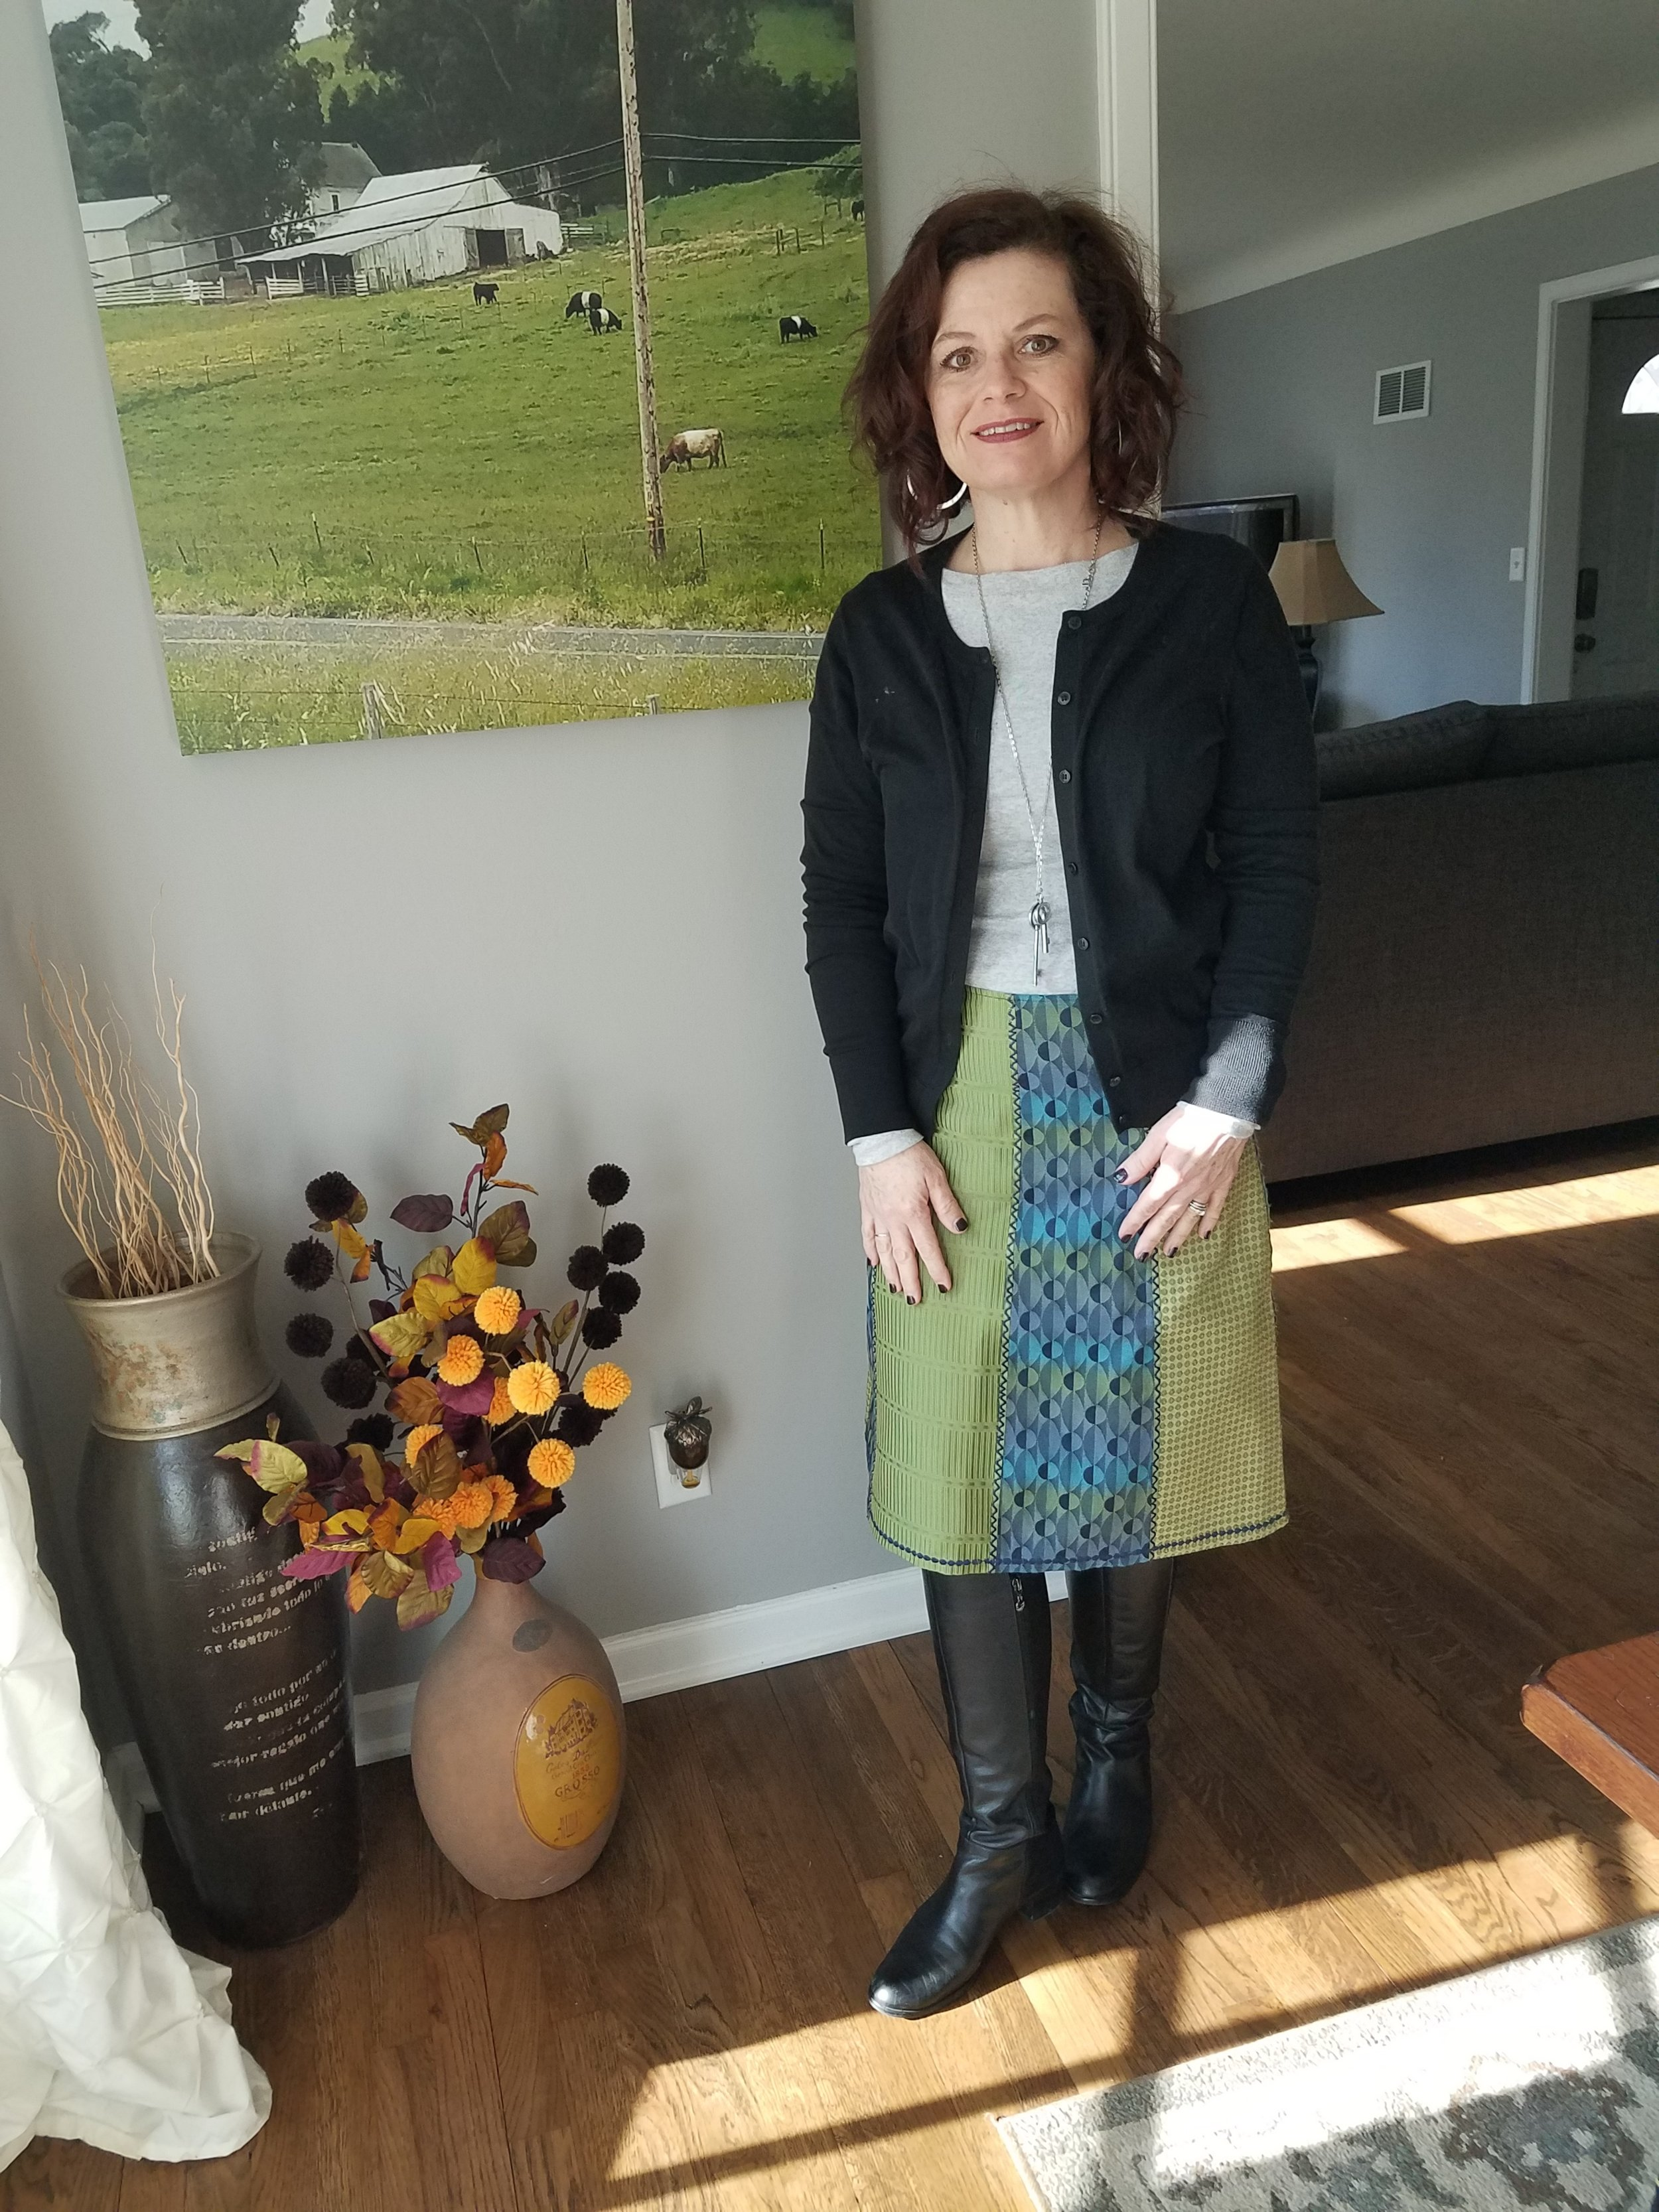 This skirt was a great consignment find that will be seen again in Spring. When paired with white or a lighter color the blues and greens will pop even more.